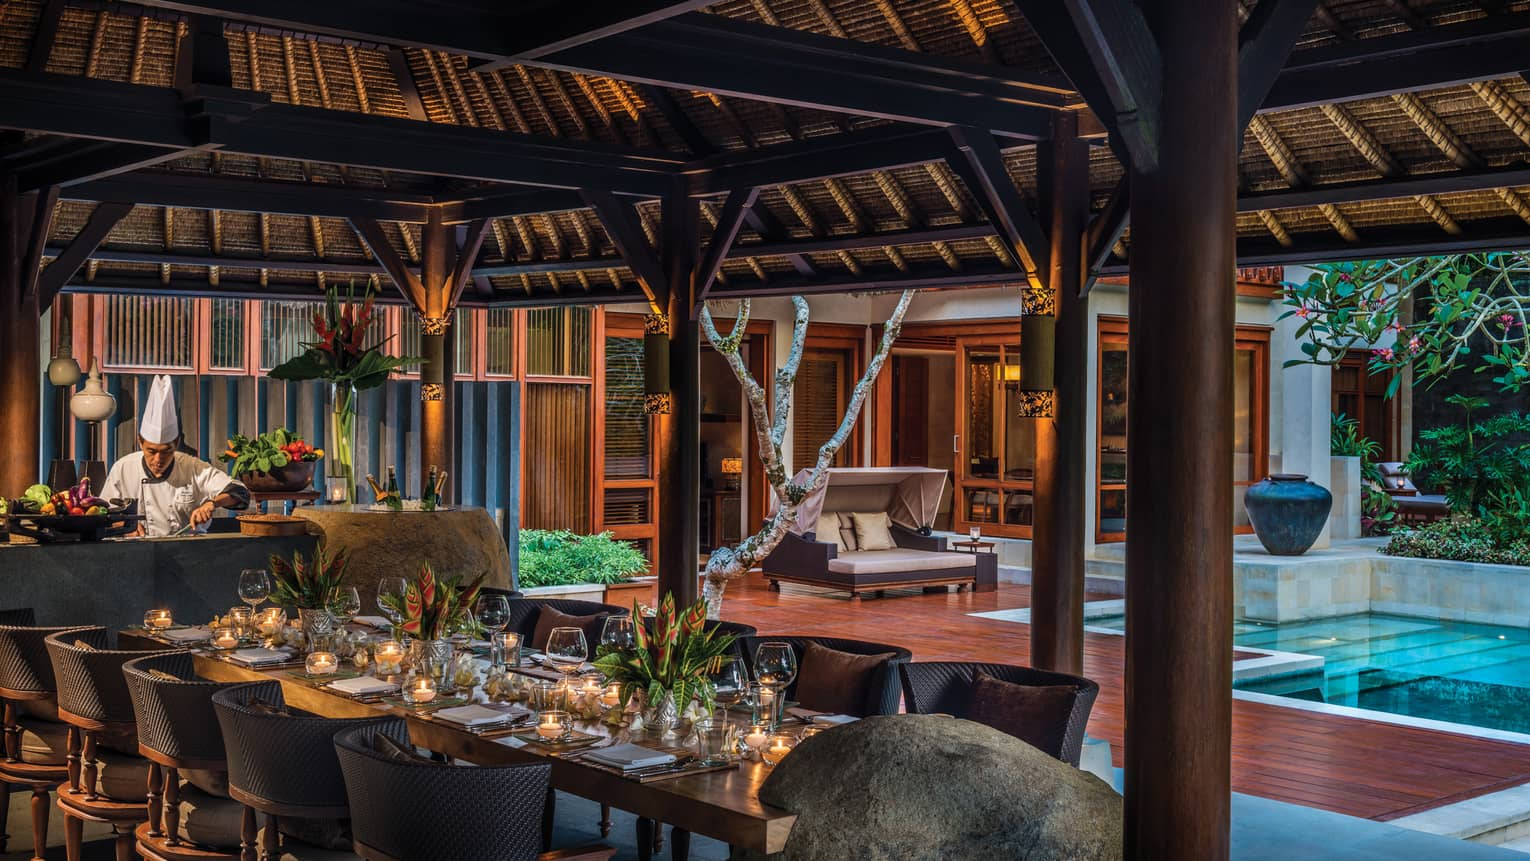 Chef prepares meal in front of elegant 10-person private dining table under thatched-roof gazebo, beside pool